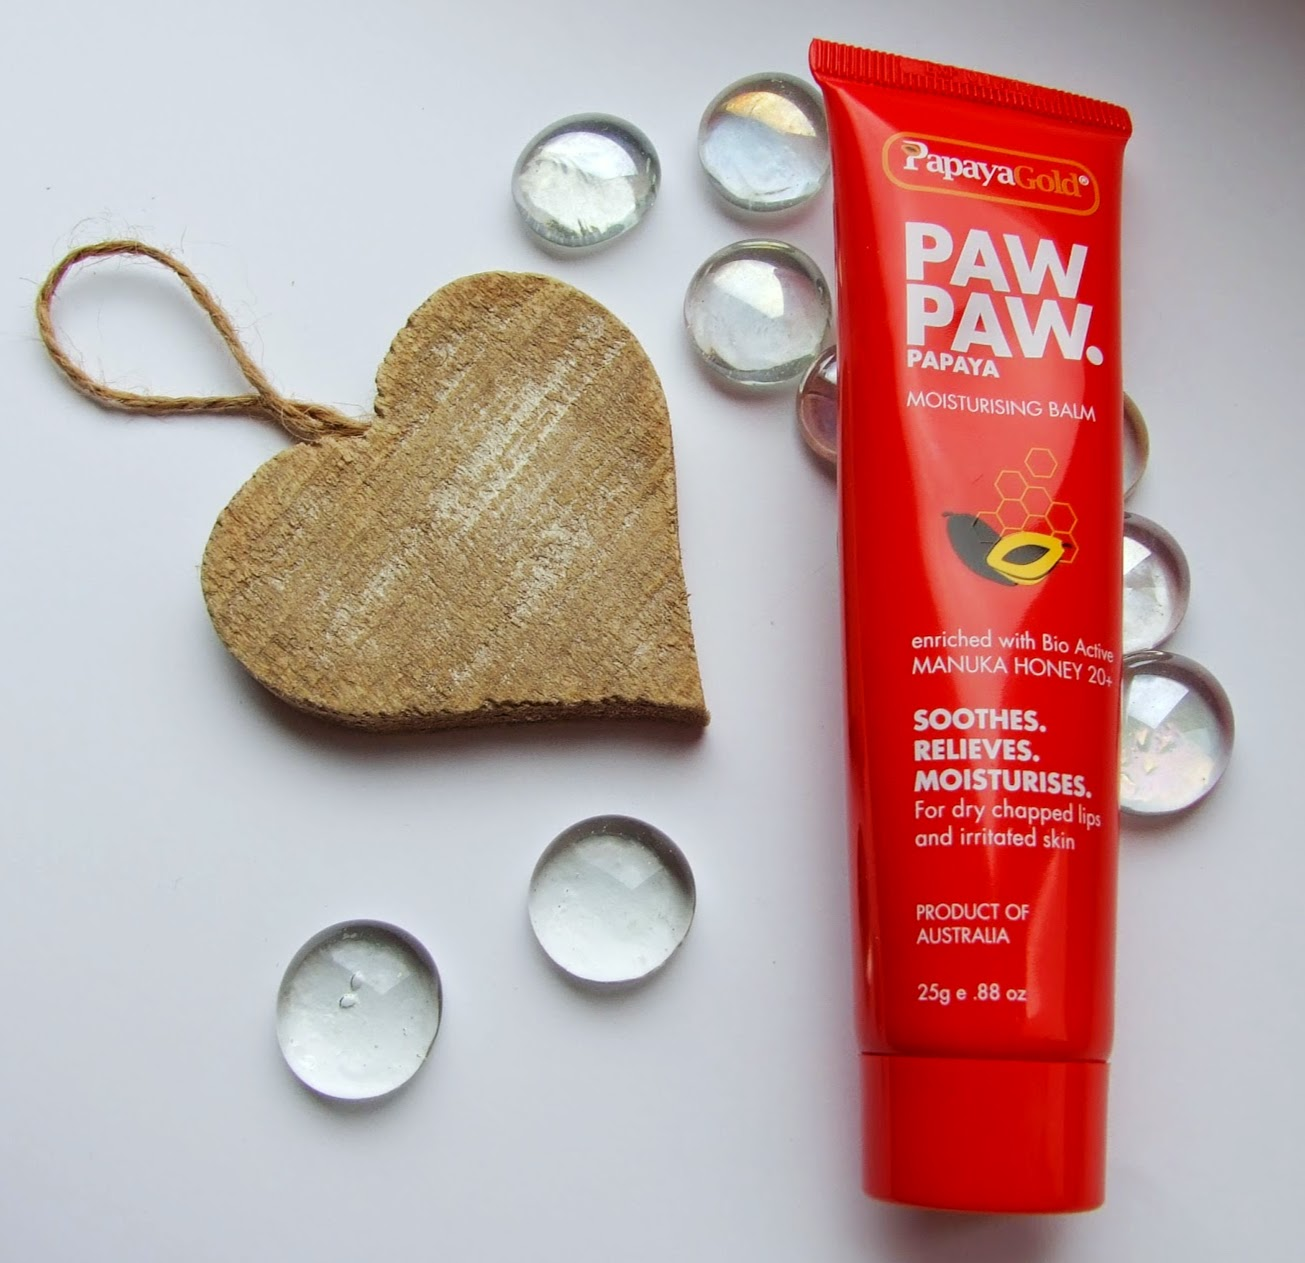 Papaya Gold PAW PAW Papaya Moisturising Balm review blog